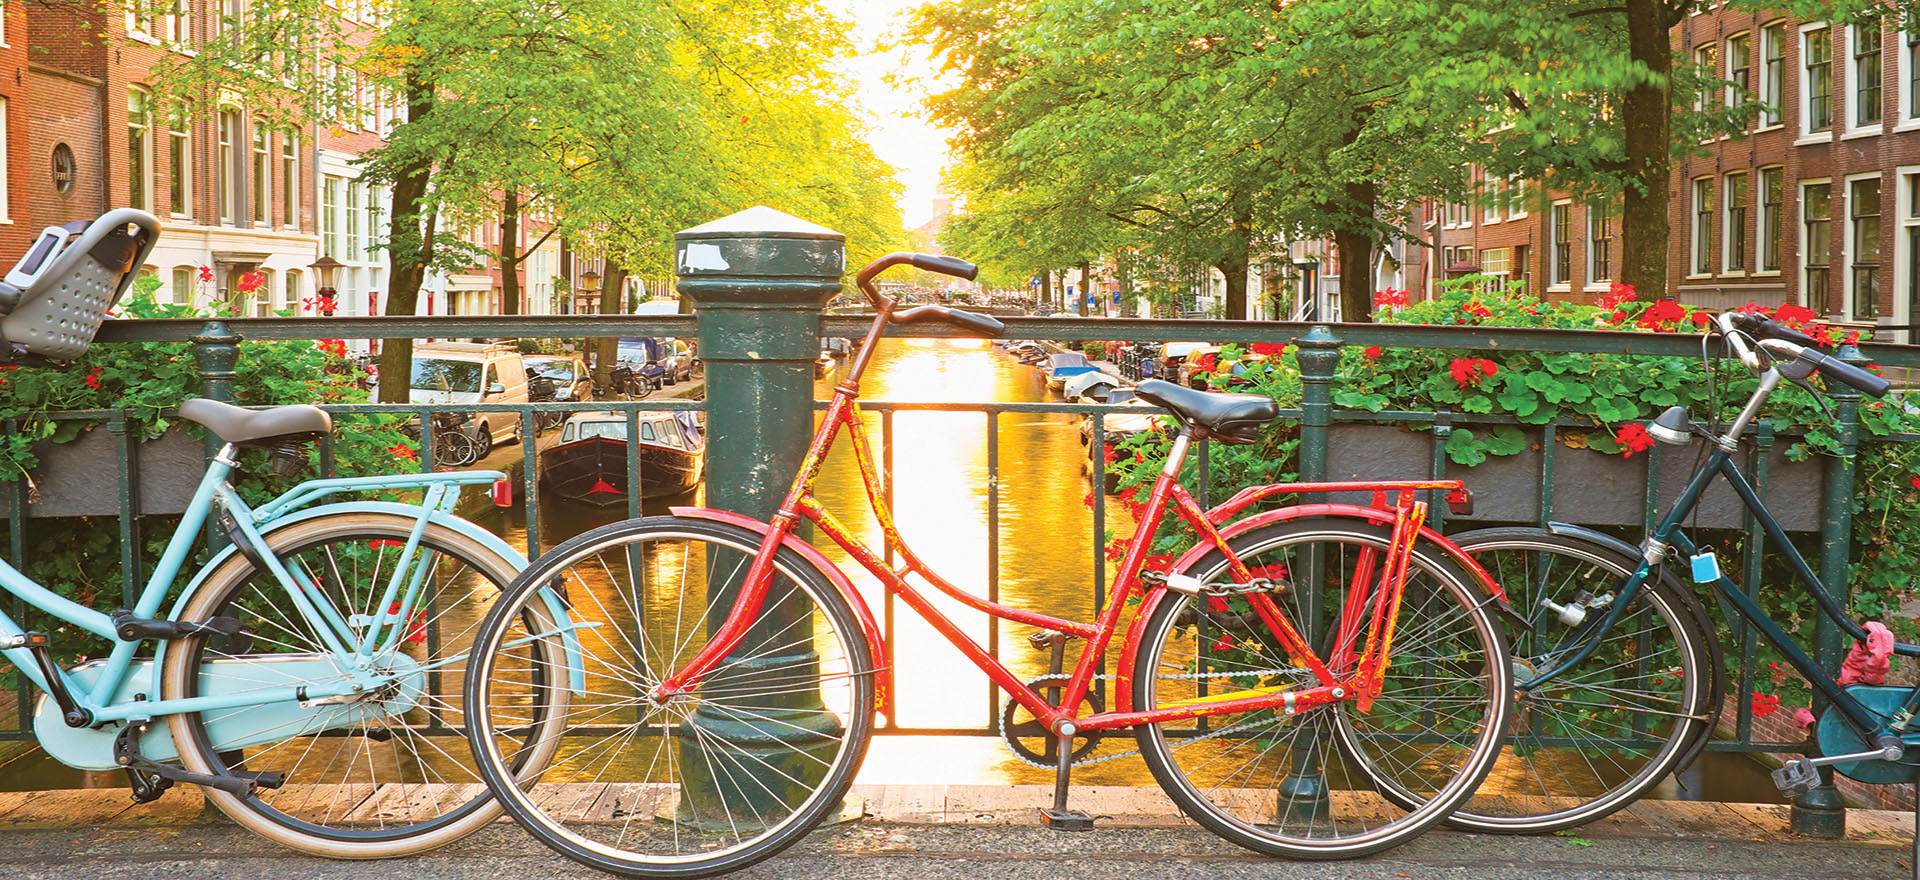 Coloured bicycles by the canal in Amsterdam